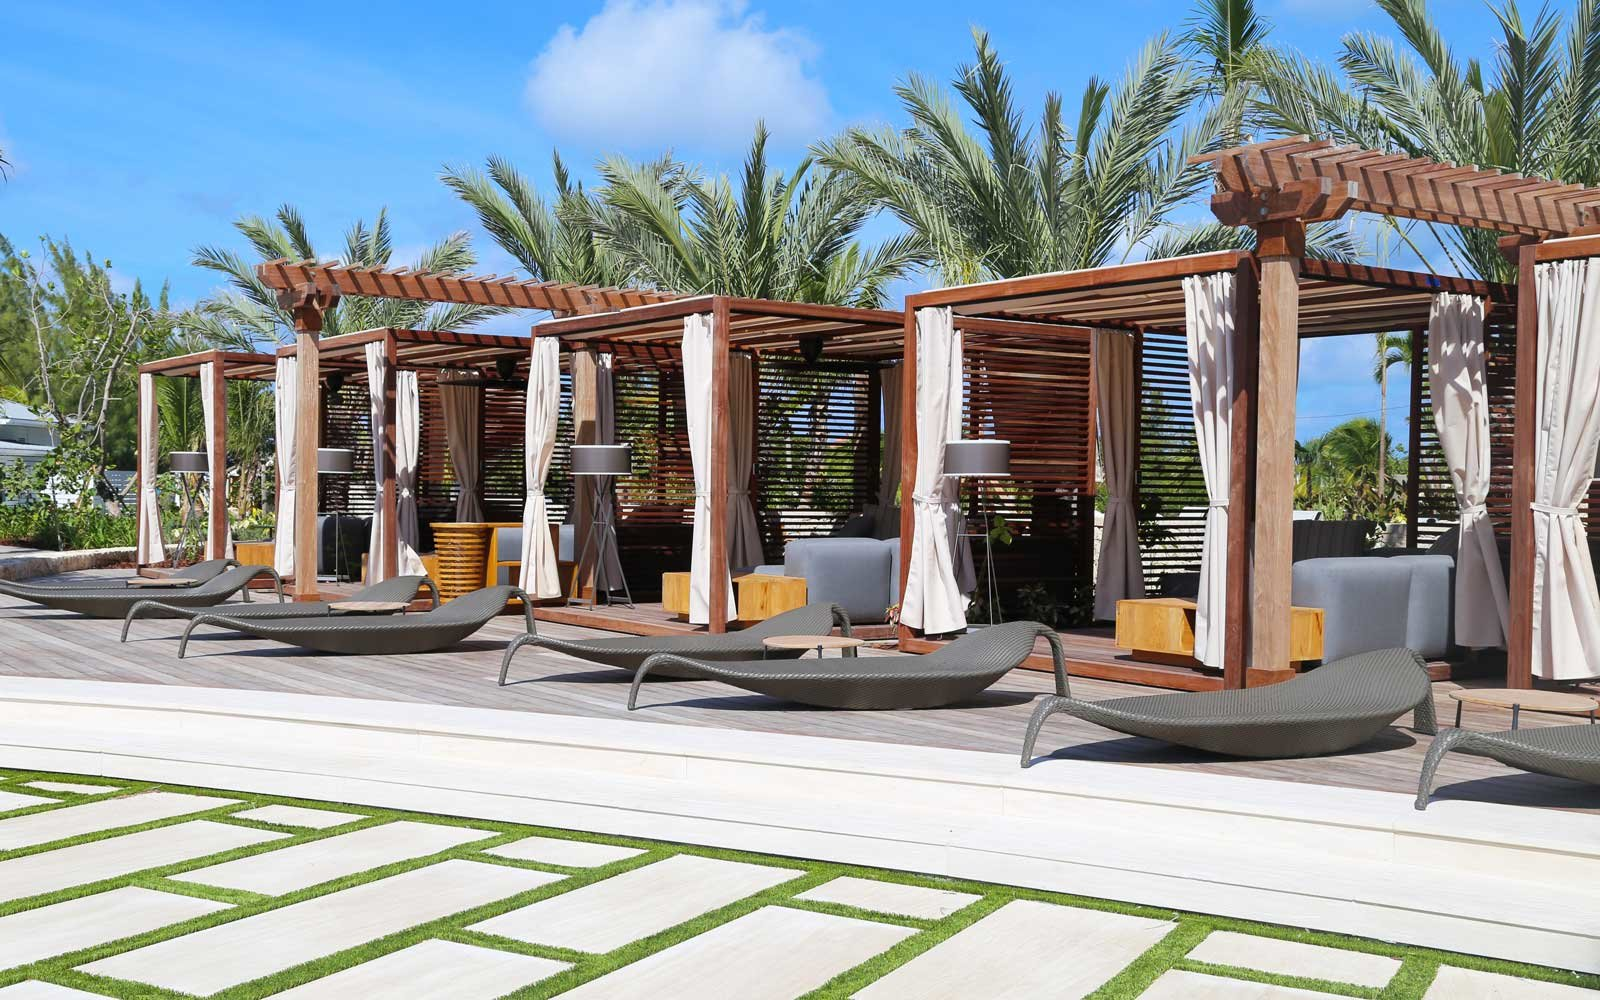 Cabanas at the Kimpton Seafire